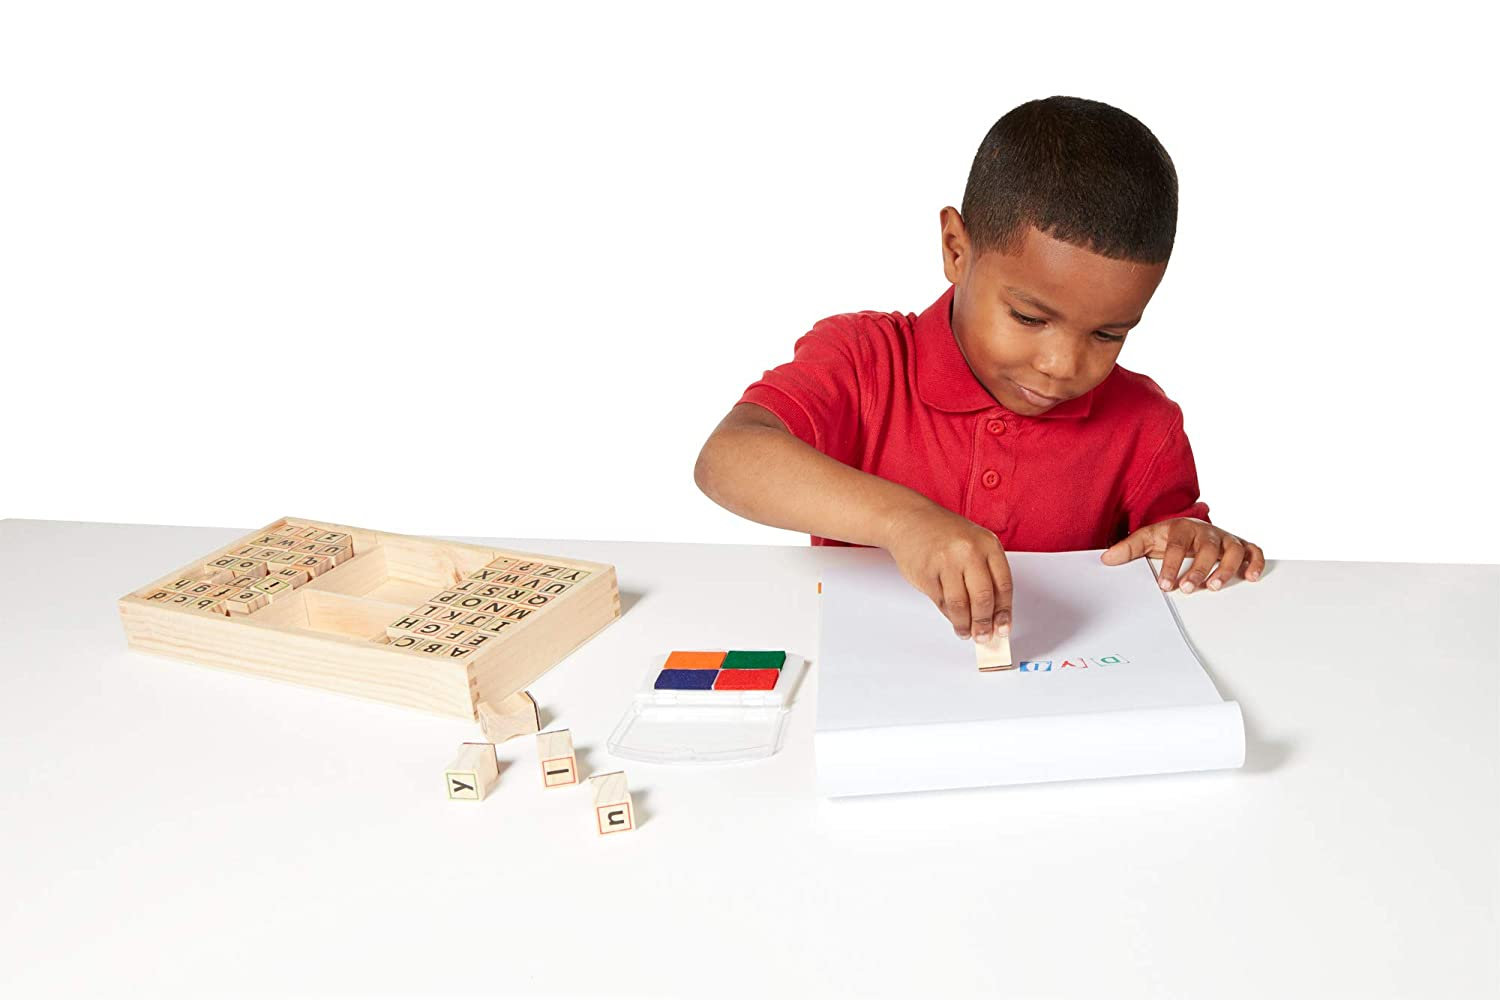 1.5 H /× 6.5 W /× 12 L 1.5 H /× 6.5 W /× 12 L 3557 Melissa /& Doug Alphabet Stamp Set 56-Stamps Stamps with Lower-Case and Capital Letters 4 Colors